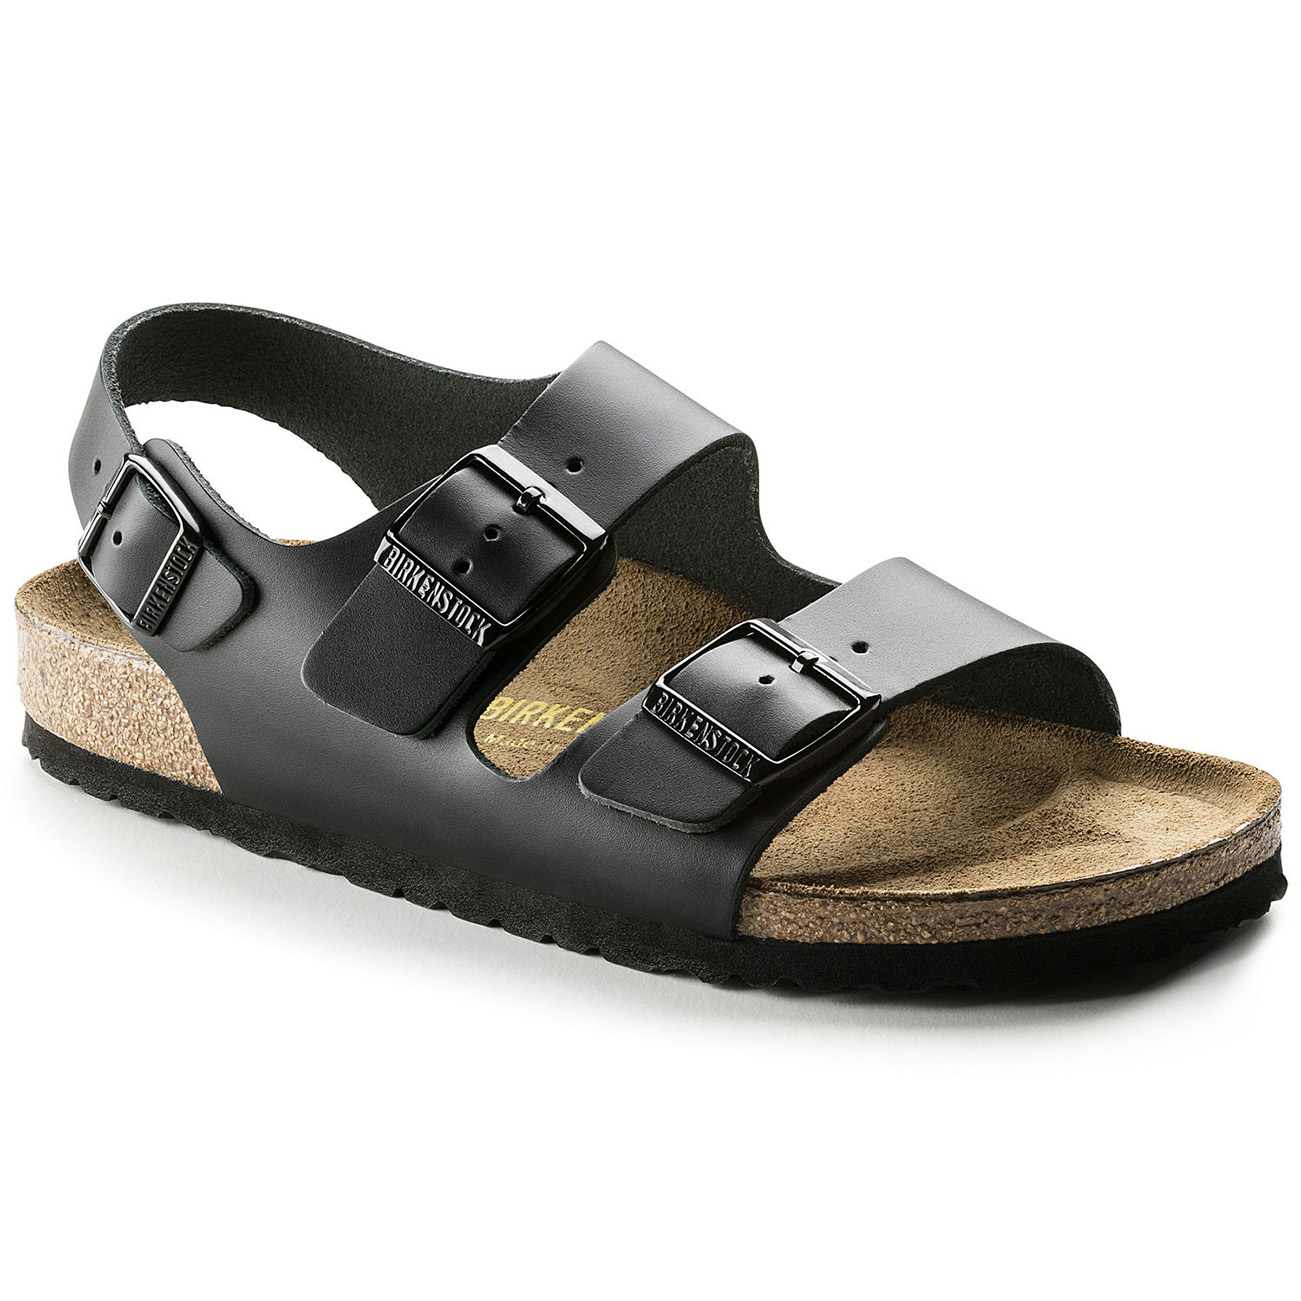 Unisex Adults Birkenstock Milano Natural Leather